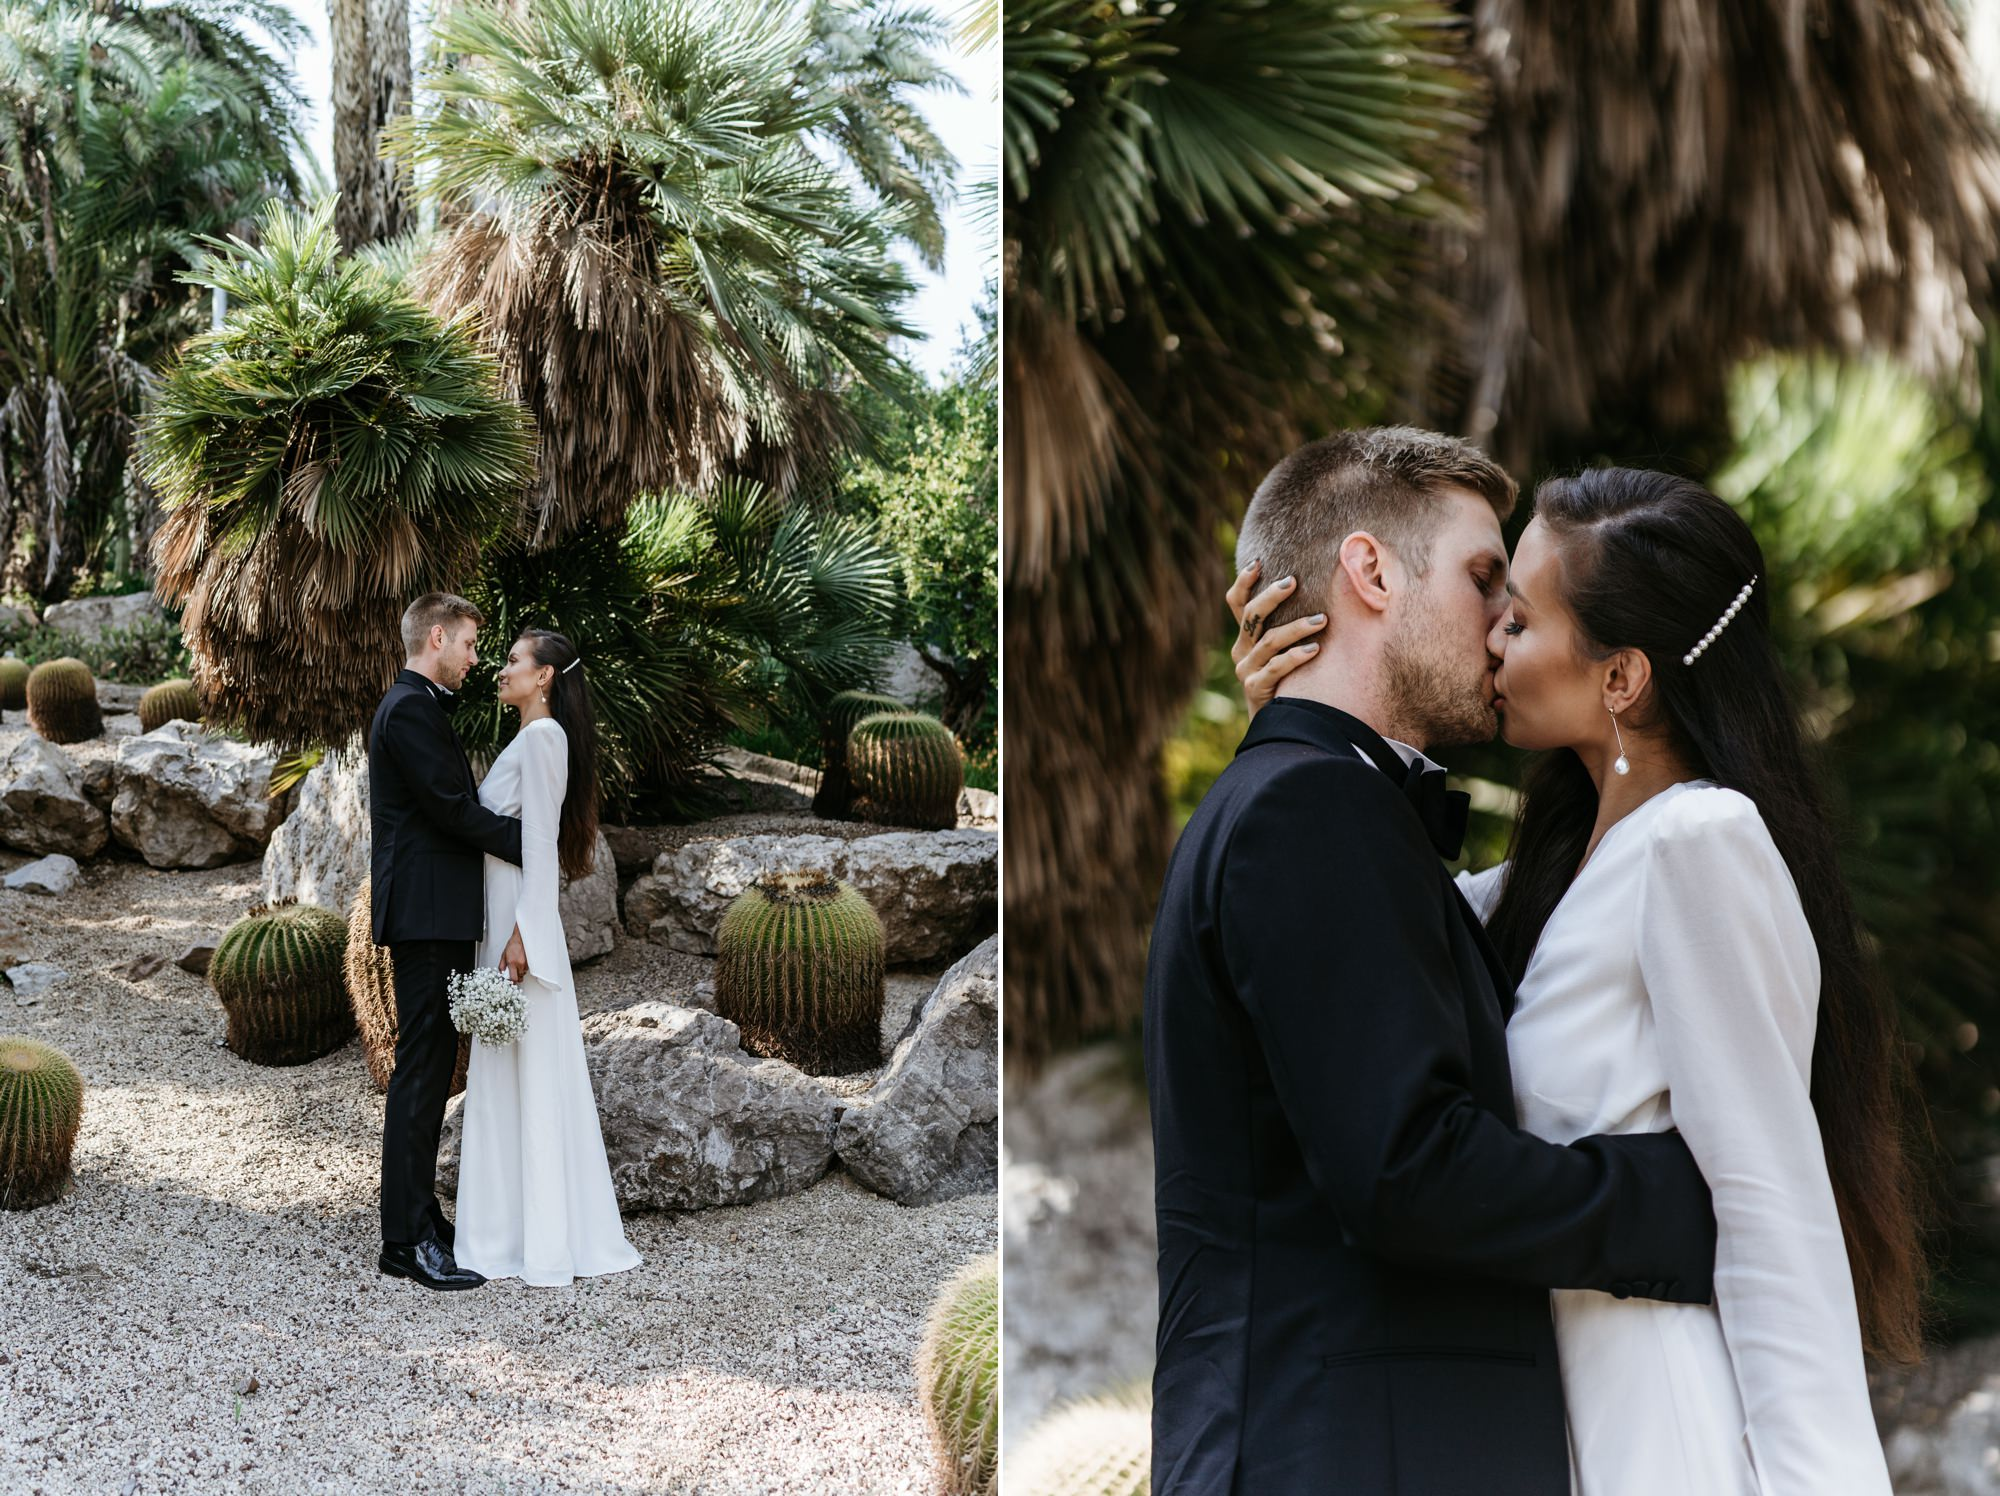 natural wedding photography private wedding barcelona 0167 1